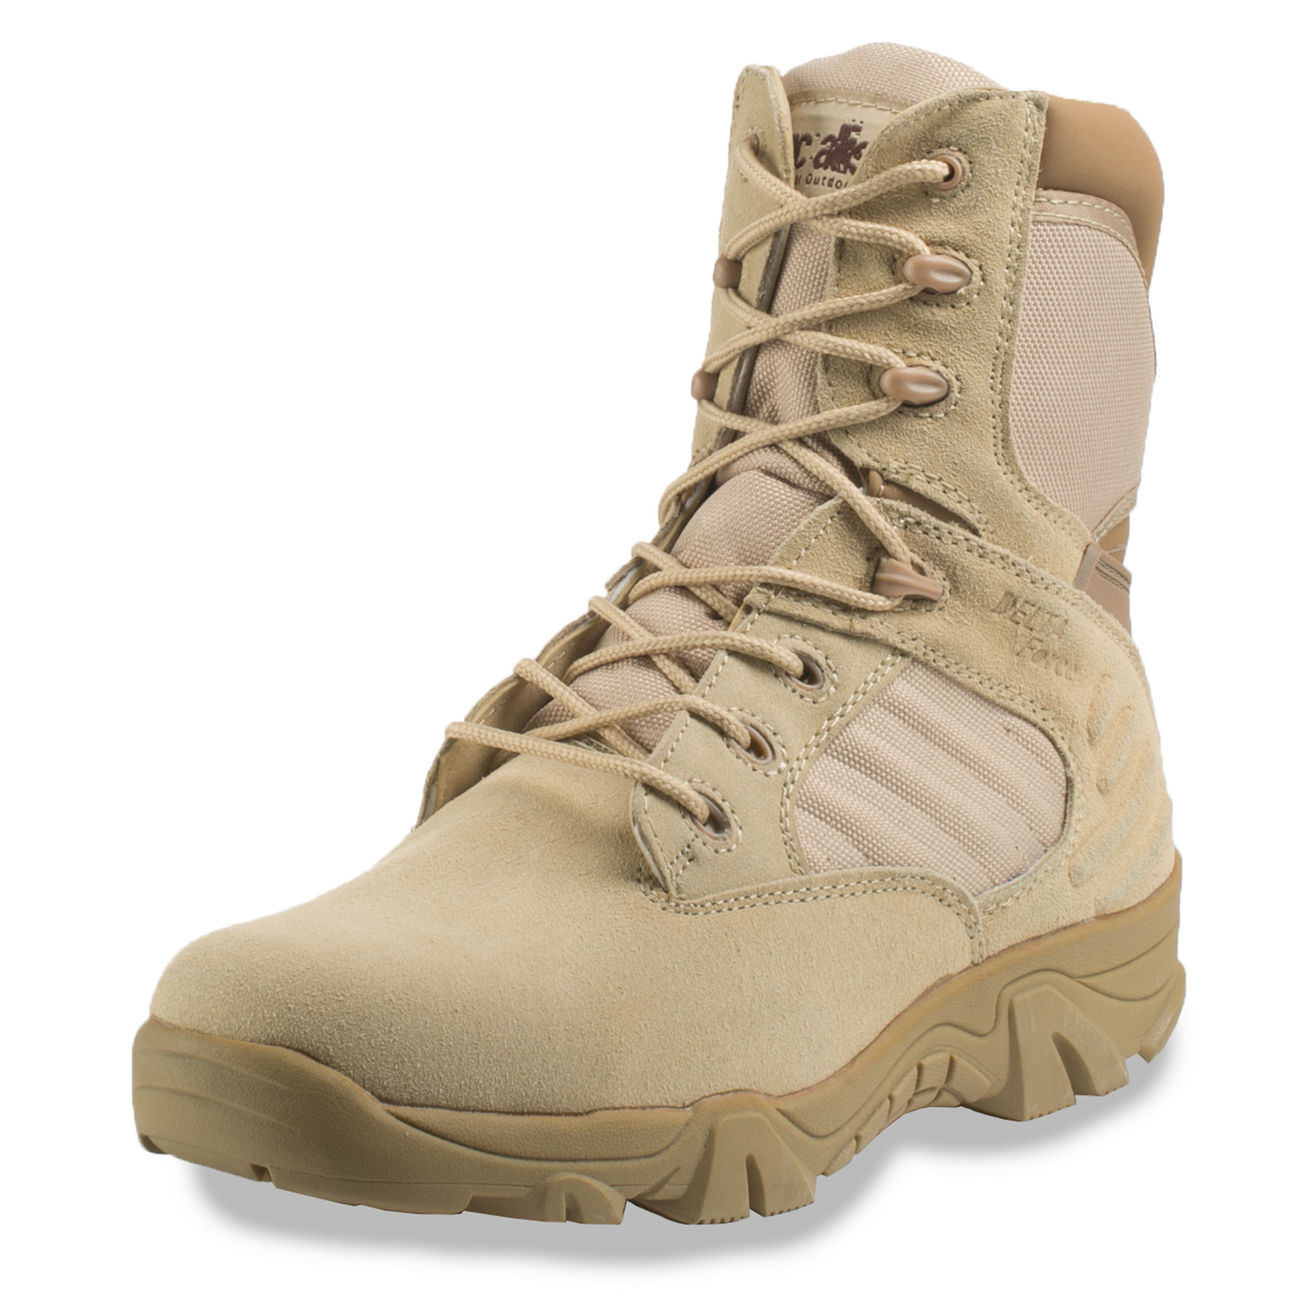 McAllister Stiefel Delta Force Tactical Outdoor Boots khaki 6